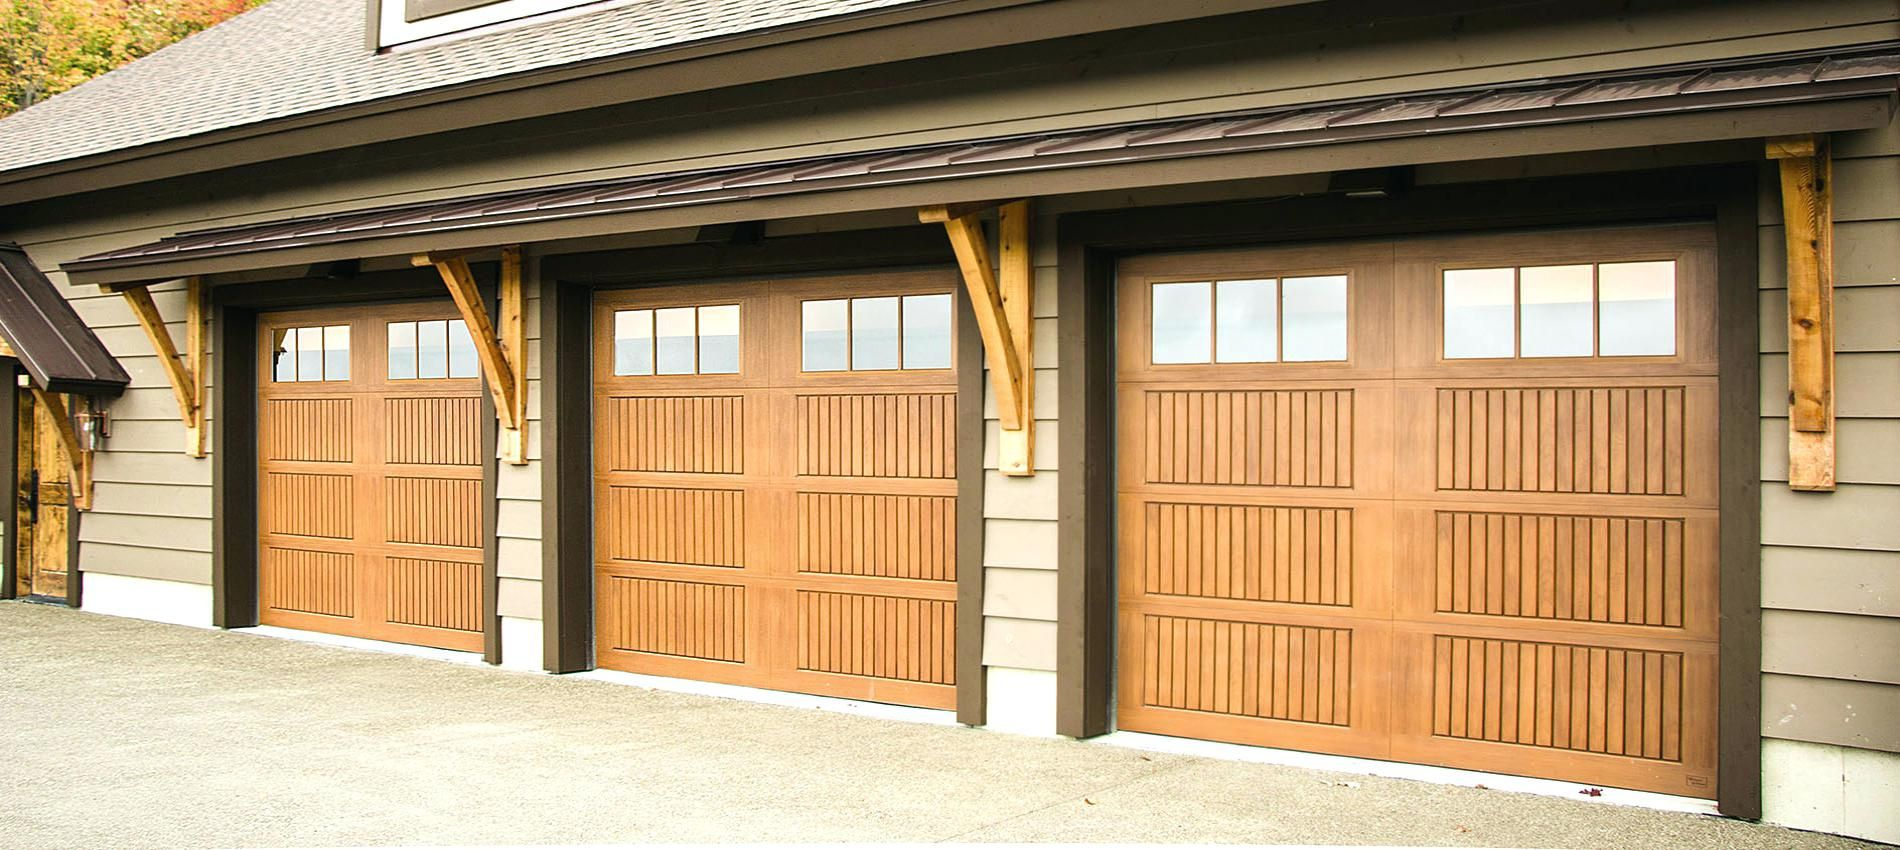 Https 247garagedoorlasvegas Com Garage Doors Spring Valley 247garagedoorlasvegas Com Offers Garage Door Spring Repair For Local Residents In Spring Valley